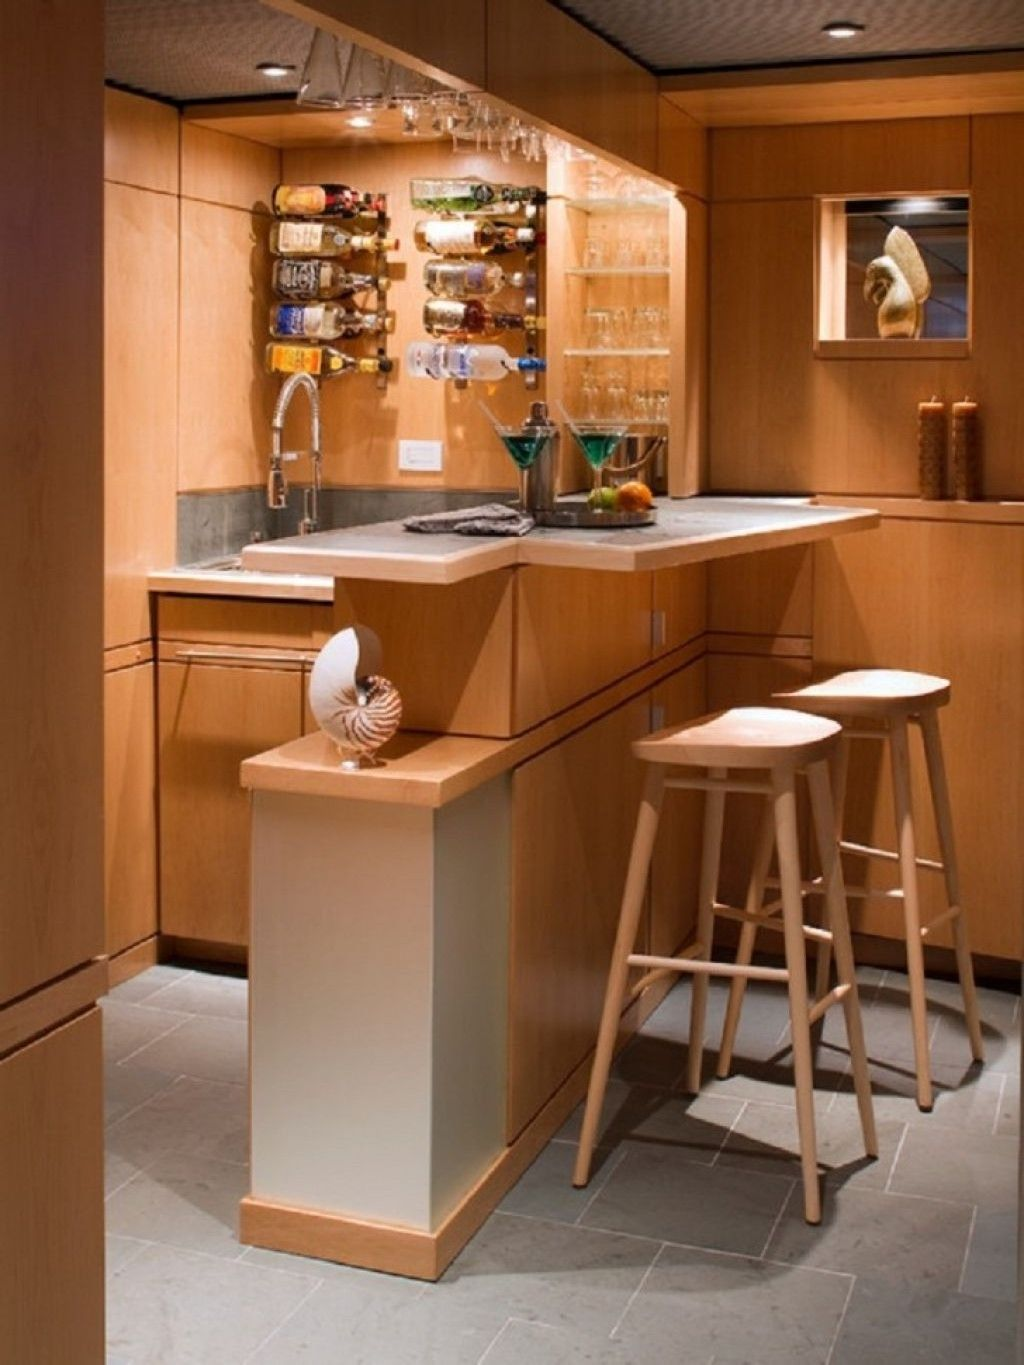 House mini bar ideas images galleries with a bite - Bars for house ...